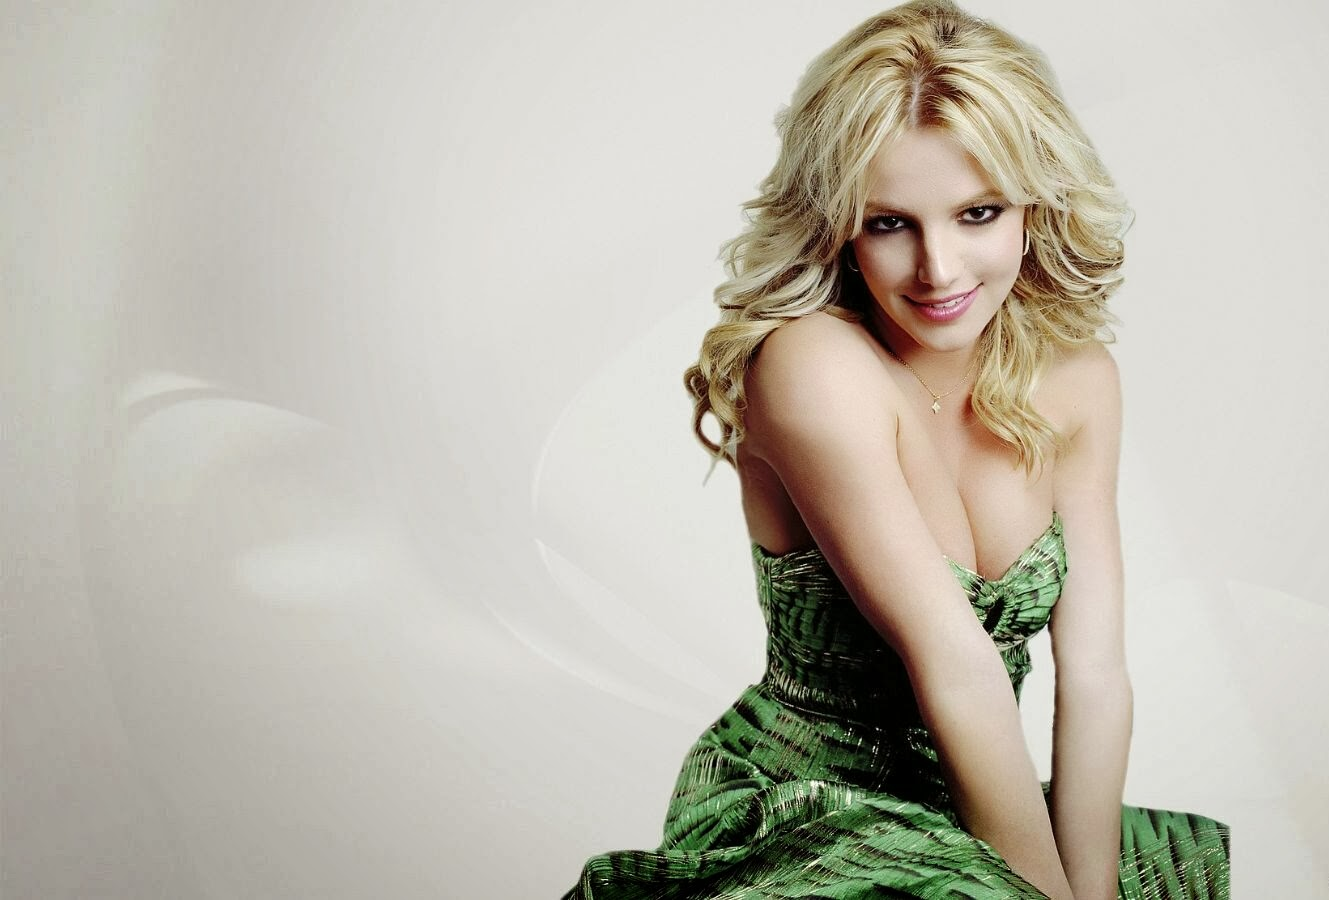 Britney+Spears+Hd+Wallpapers+Free+Download051